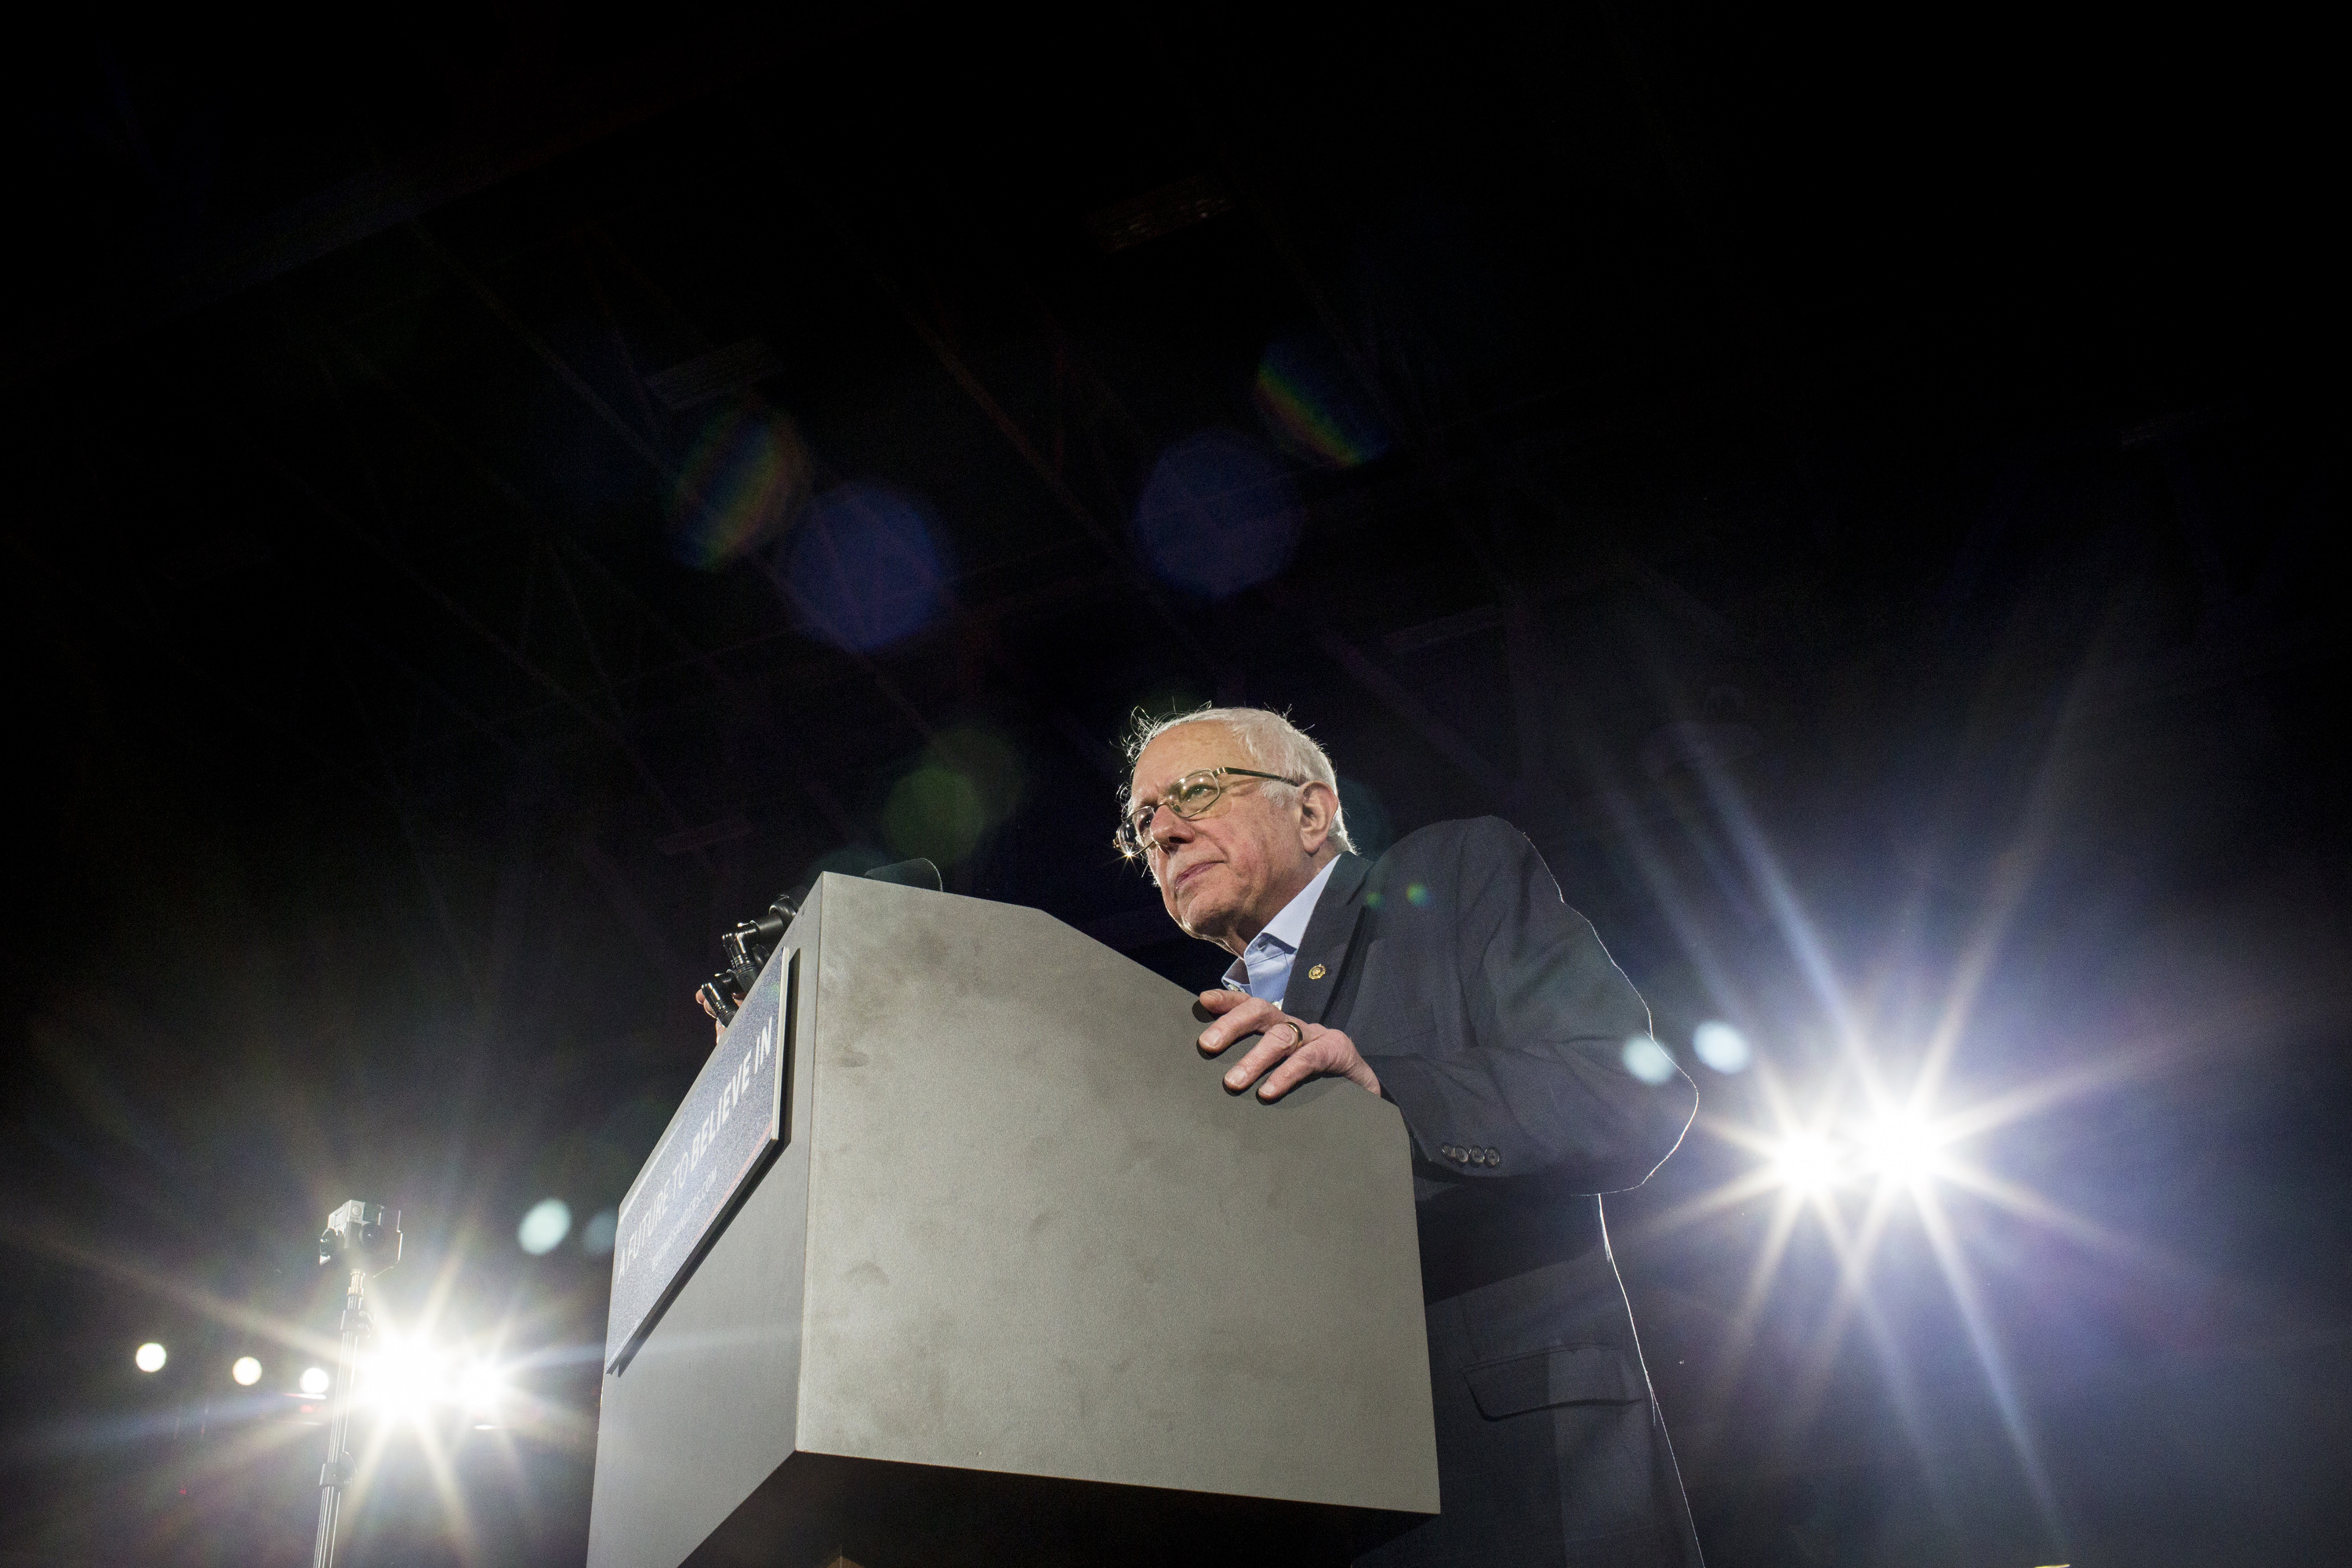 Bernie Sanders speaks to supporters at a campaign rally and concert in Iowa City, Iowa on Jan. 30, 2016.